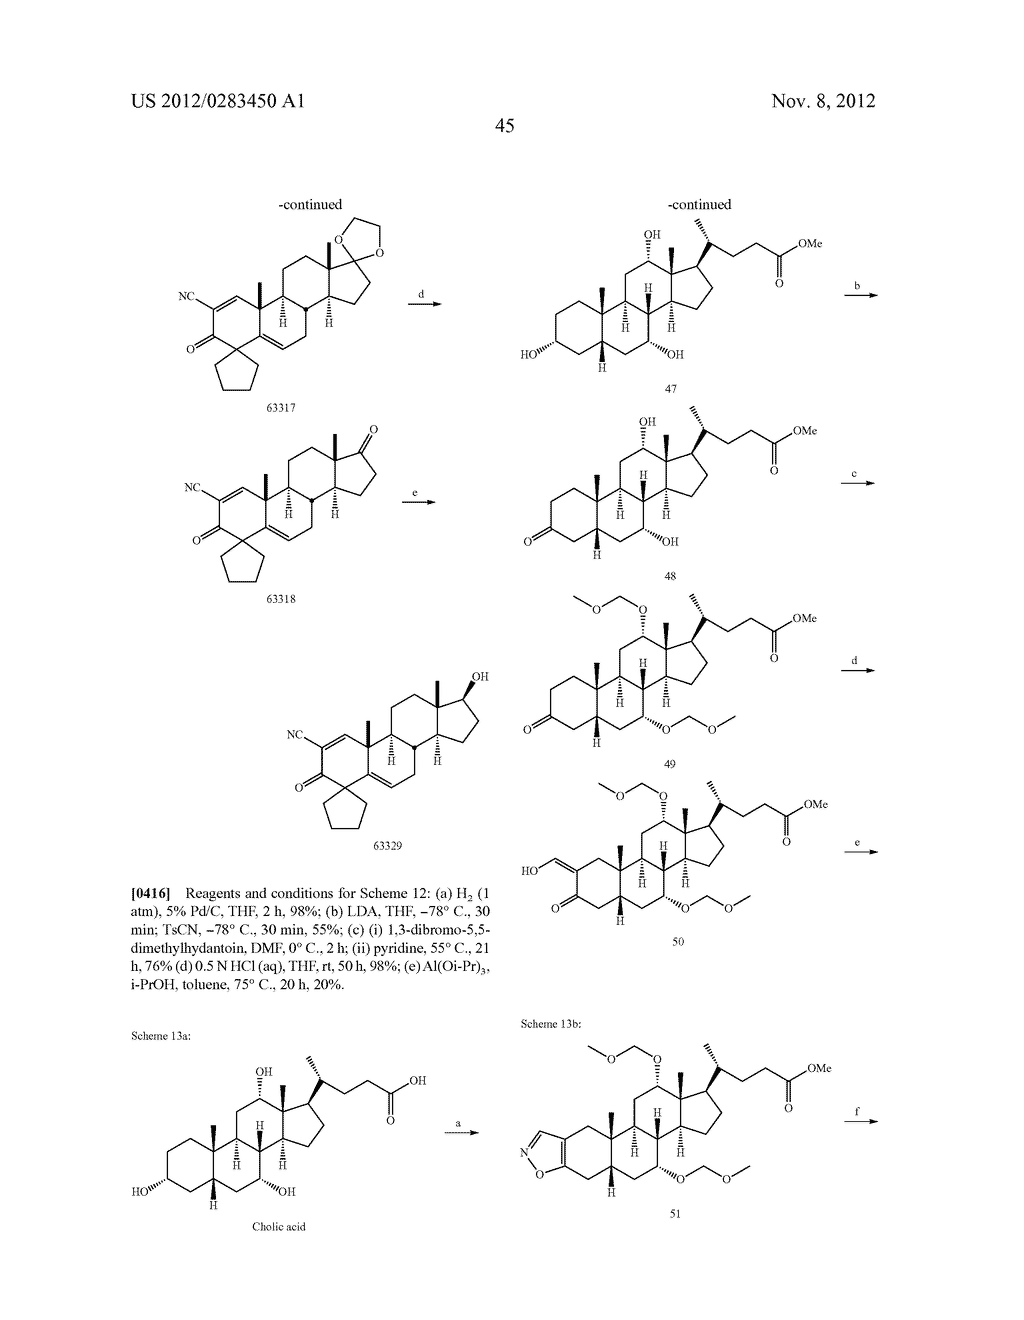 COMPOUNDS INCLUDING AN ANTI-INFLAMMATORY PHARMACORE AND METHODS OF USE - diagram, schematic, and image 70